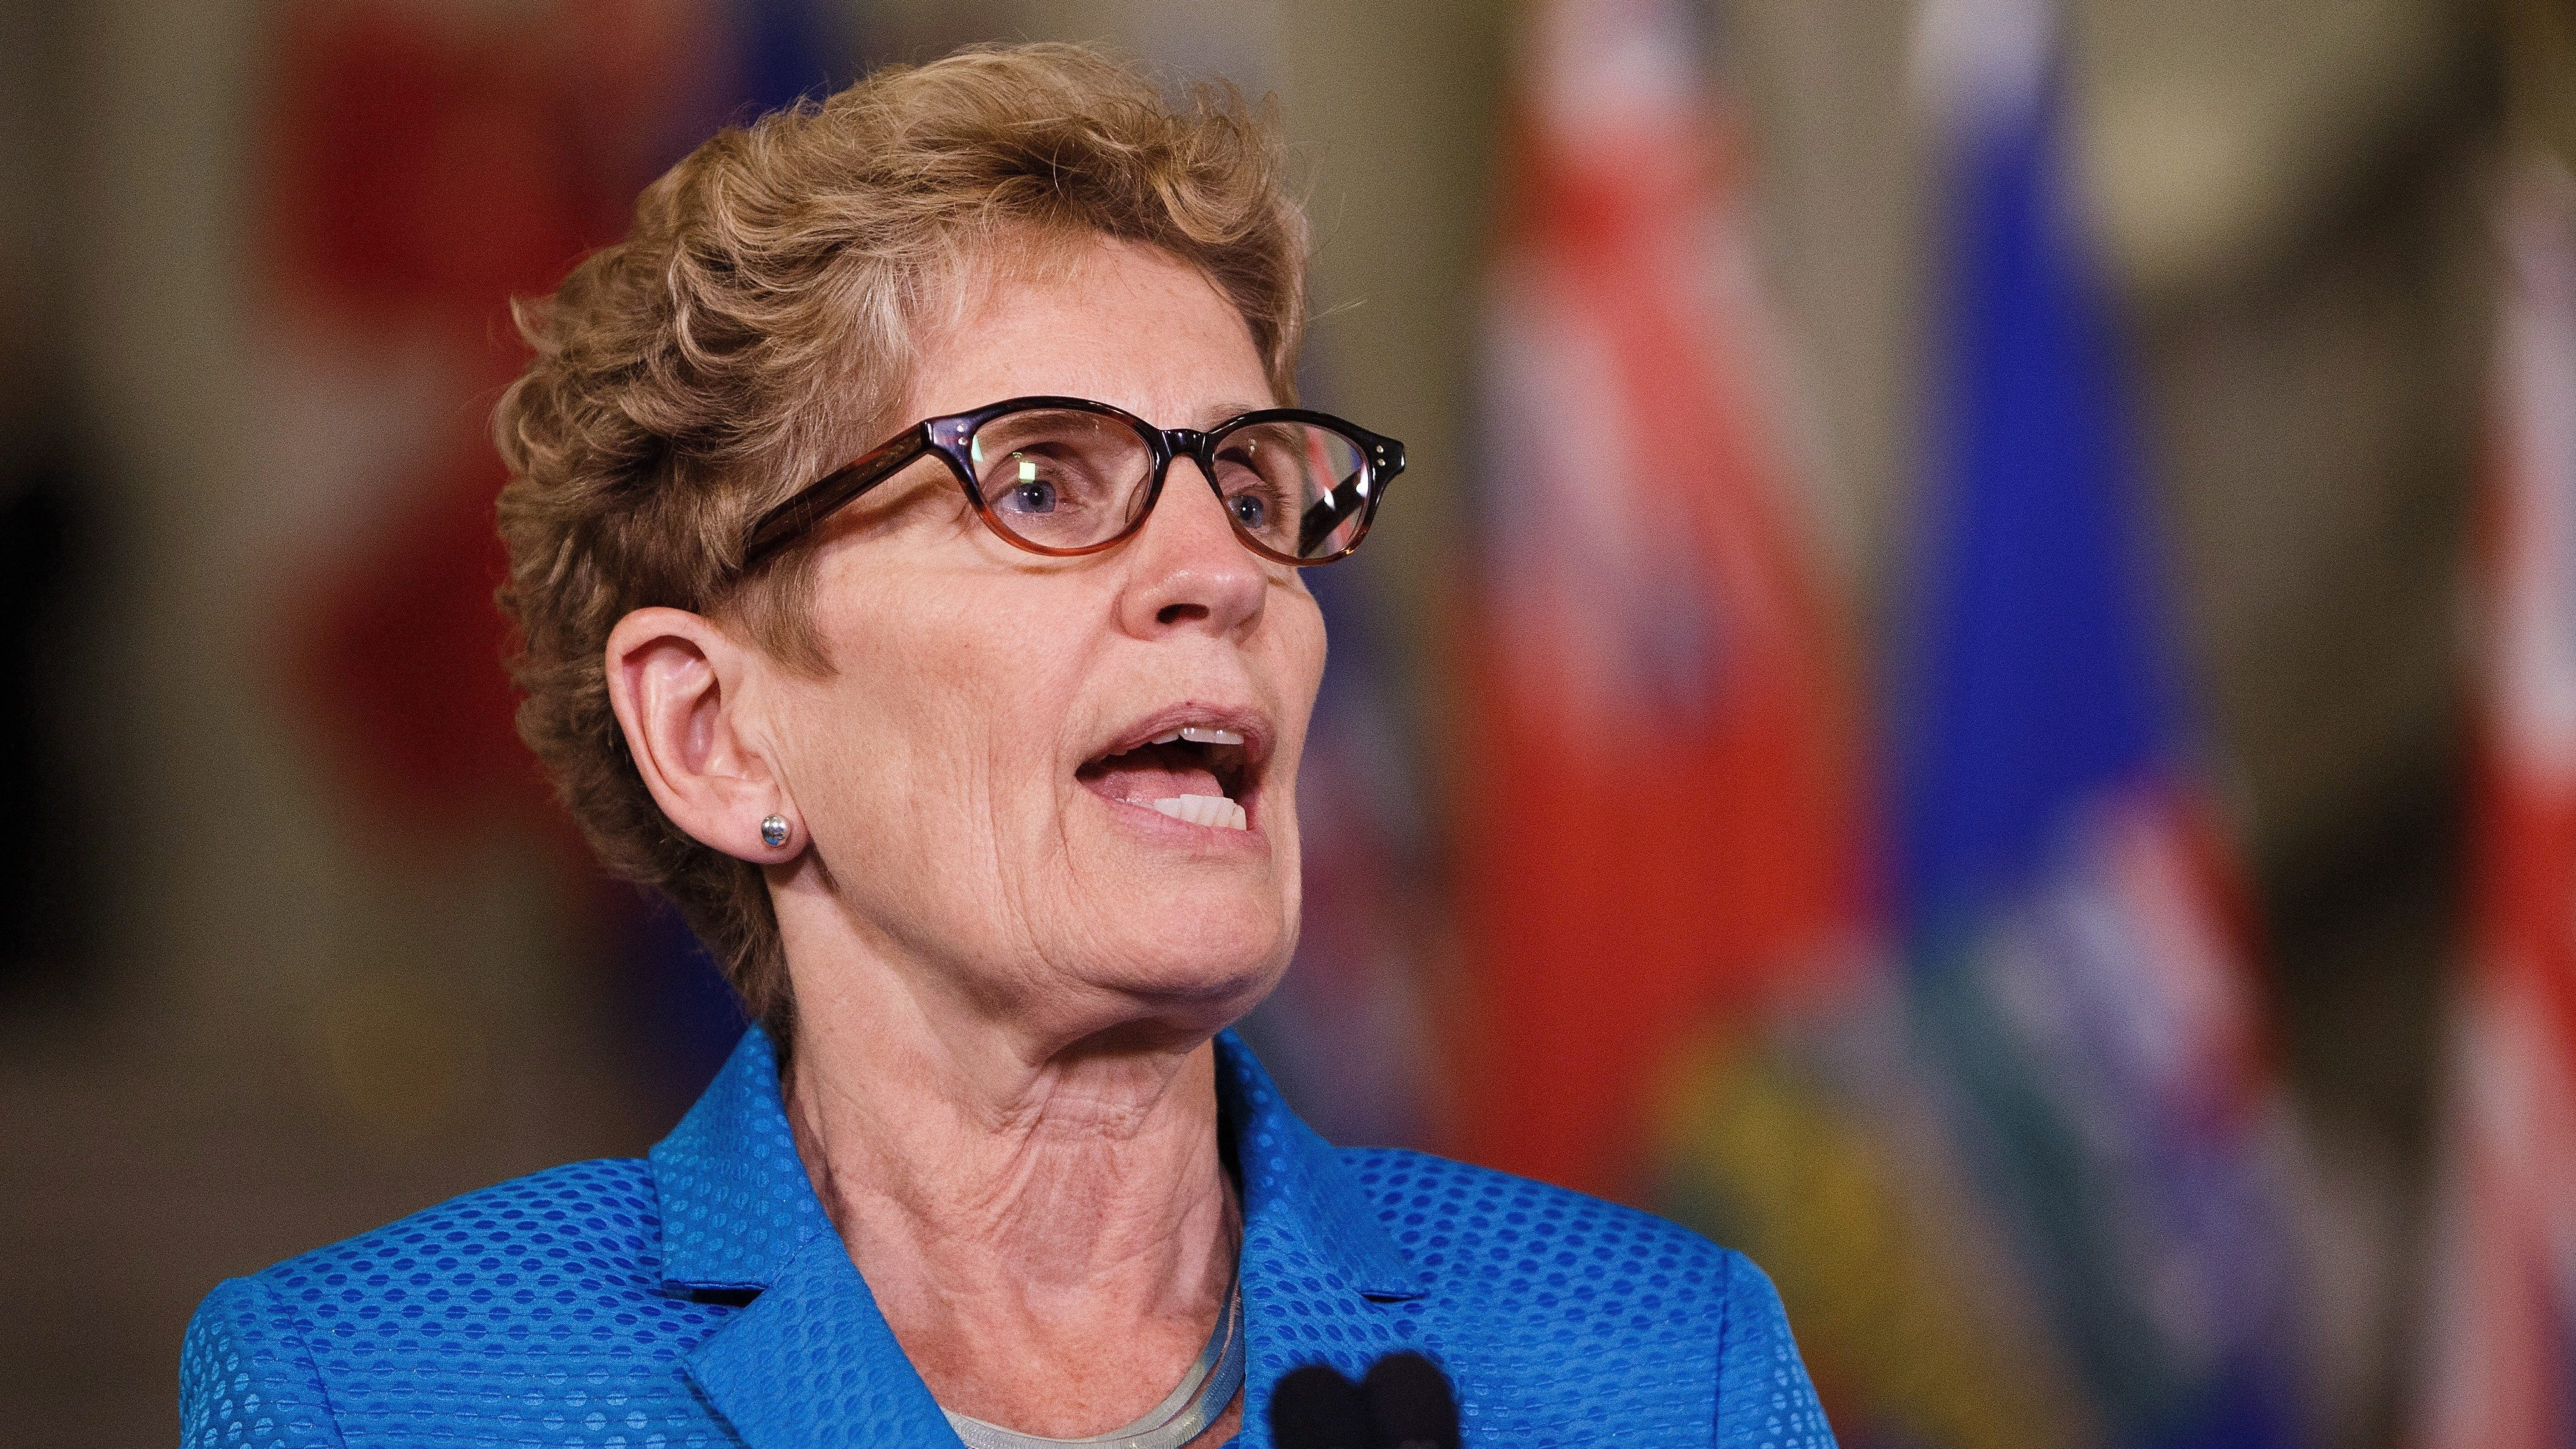 Ontario Premier Kathleen Wynne to testify in byelection bribery case